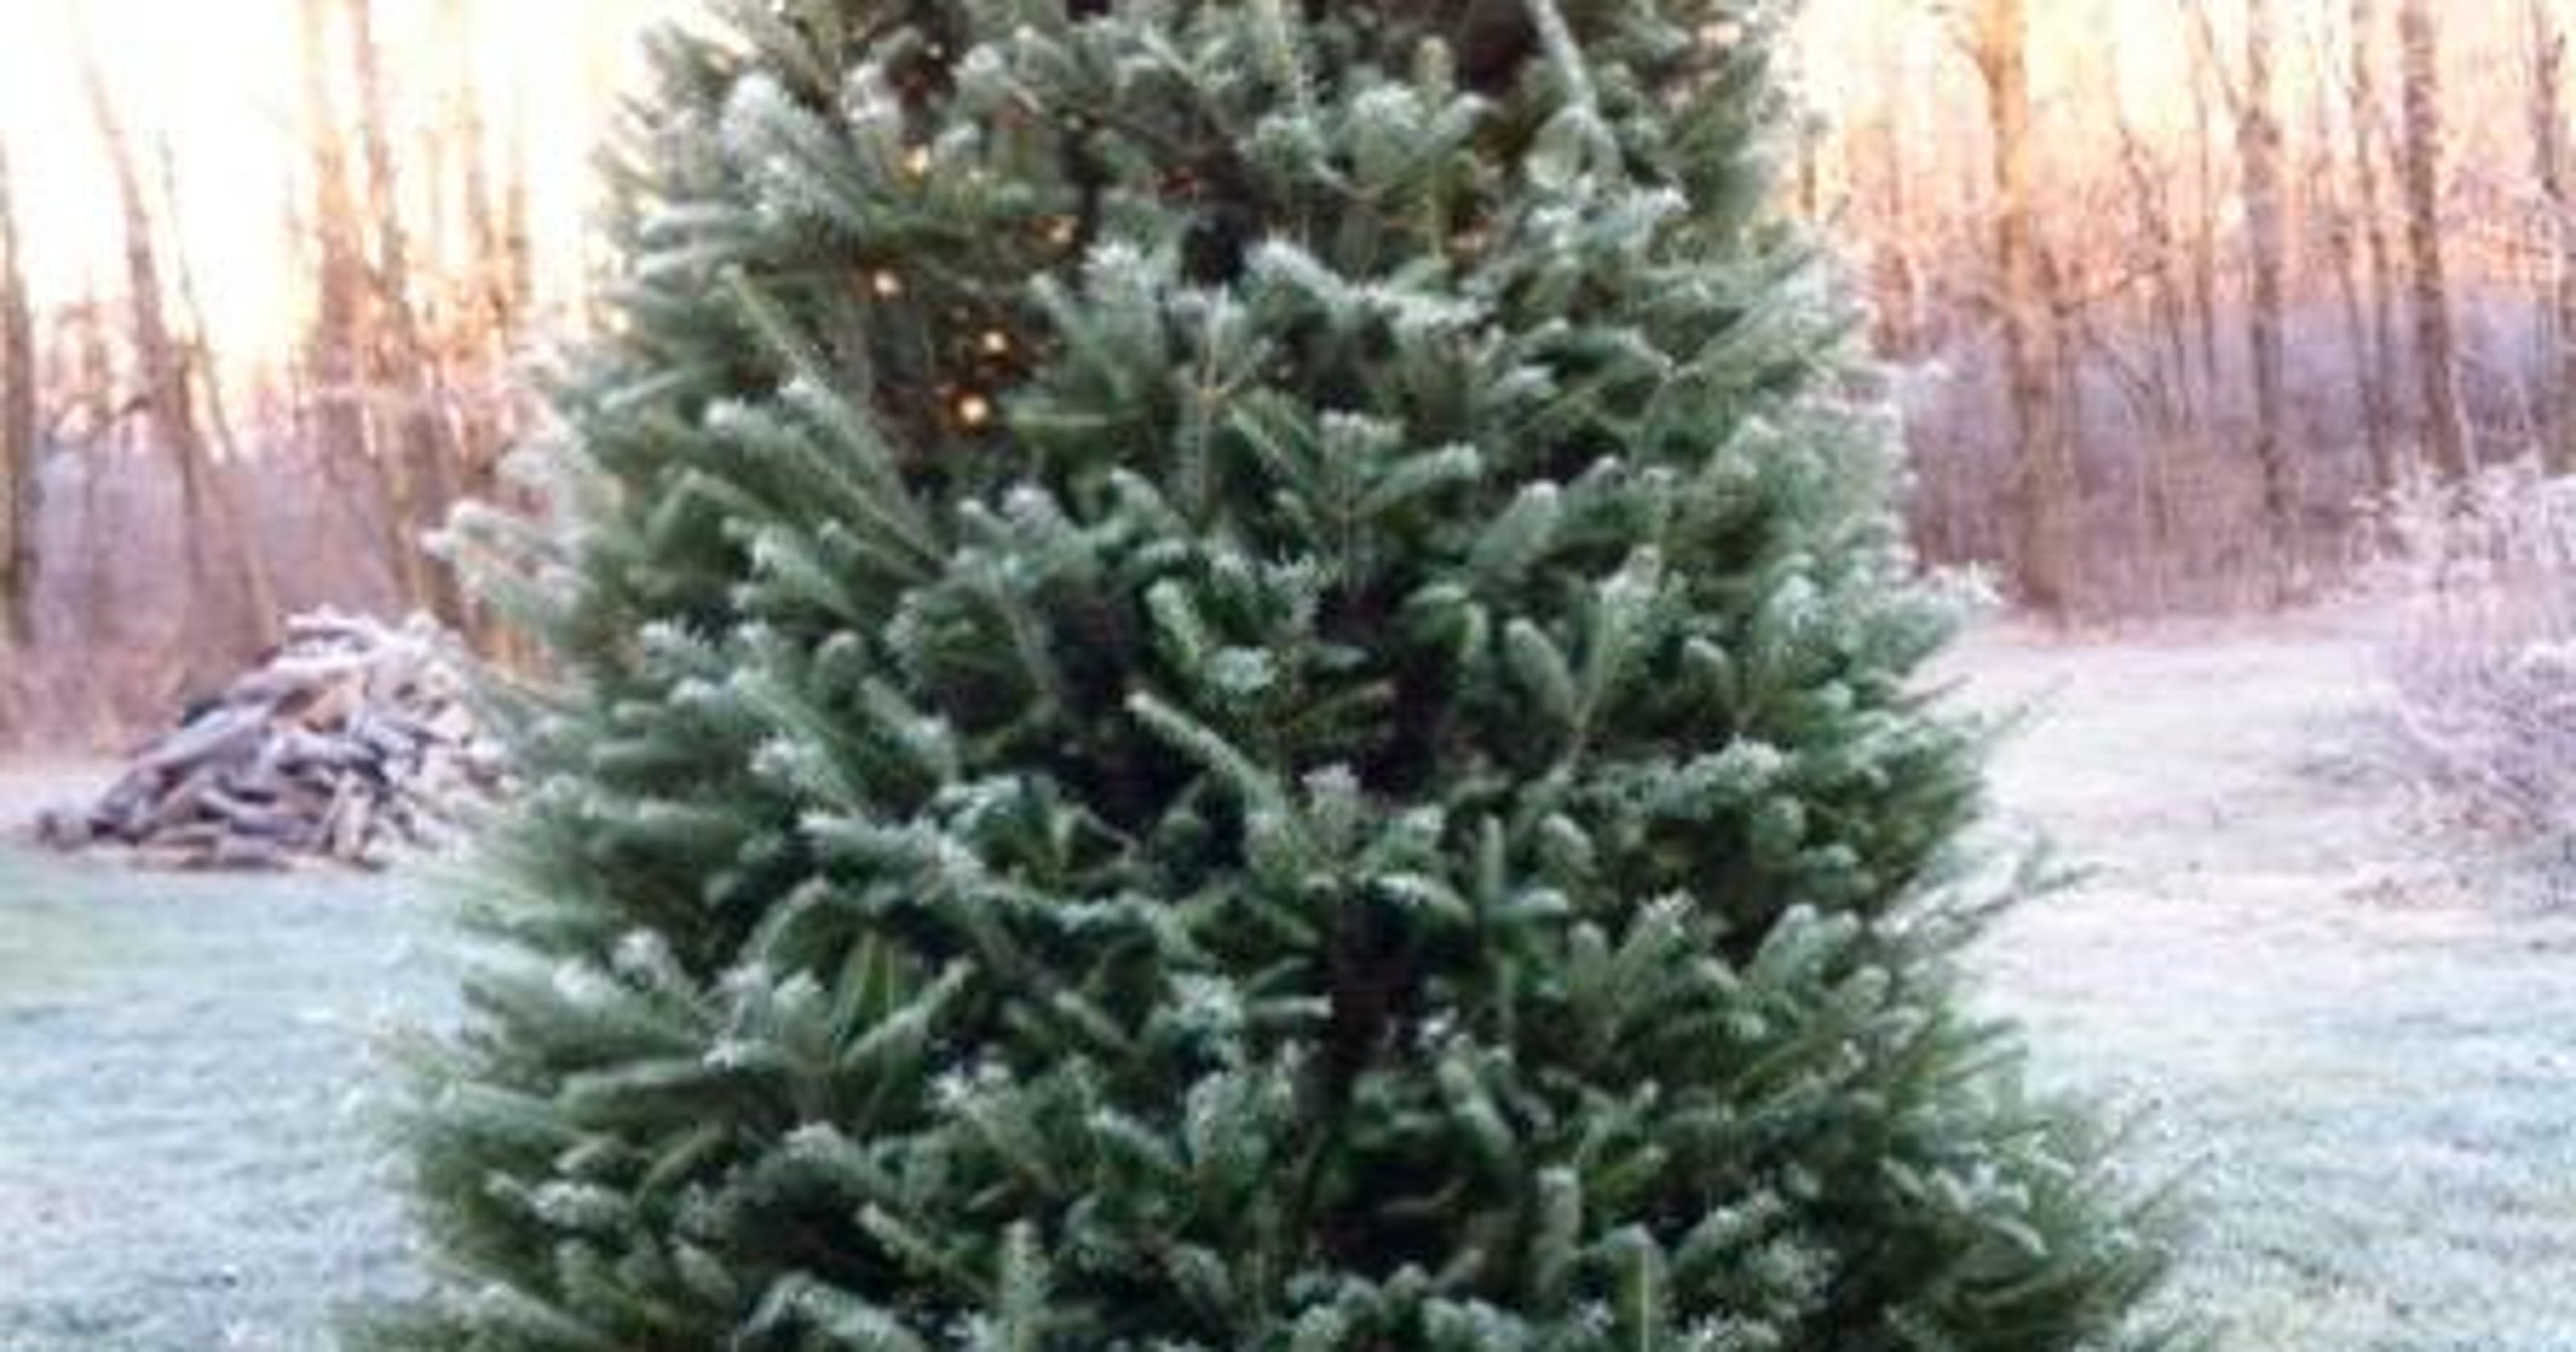 Christmas Trees That Are Popular In New Jersey At Local